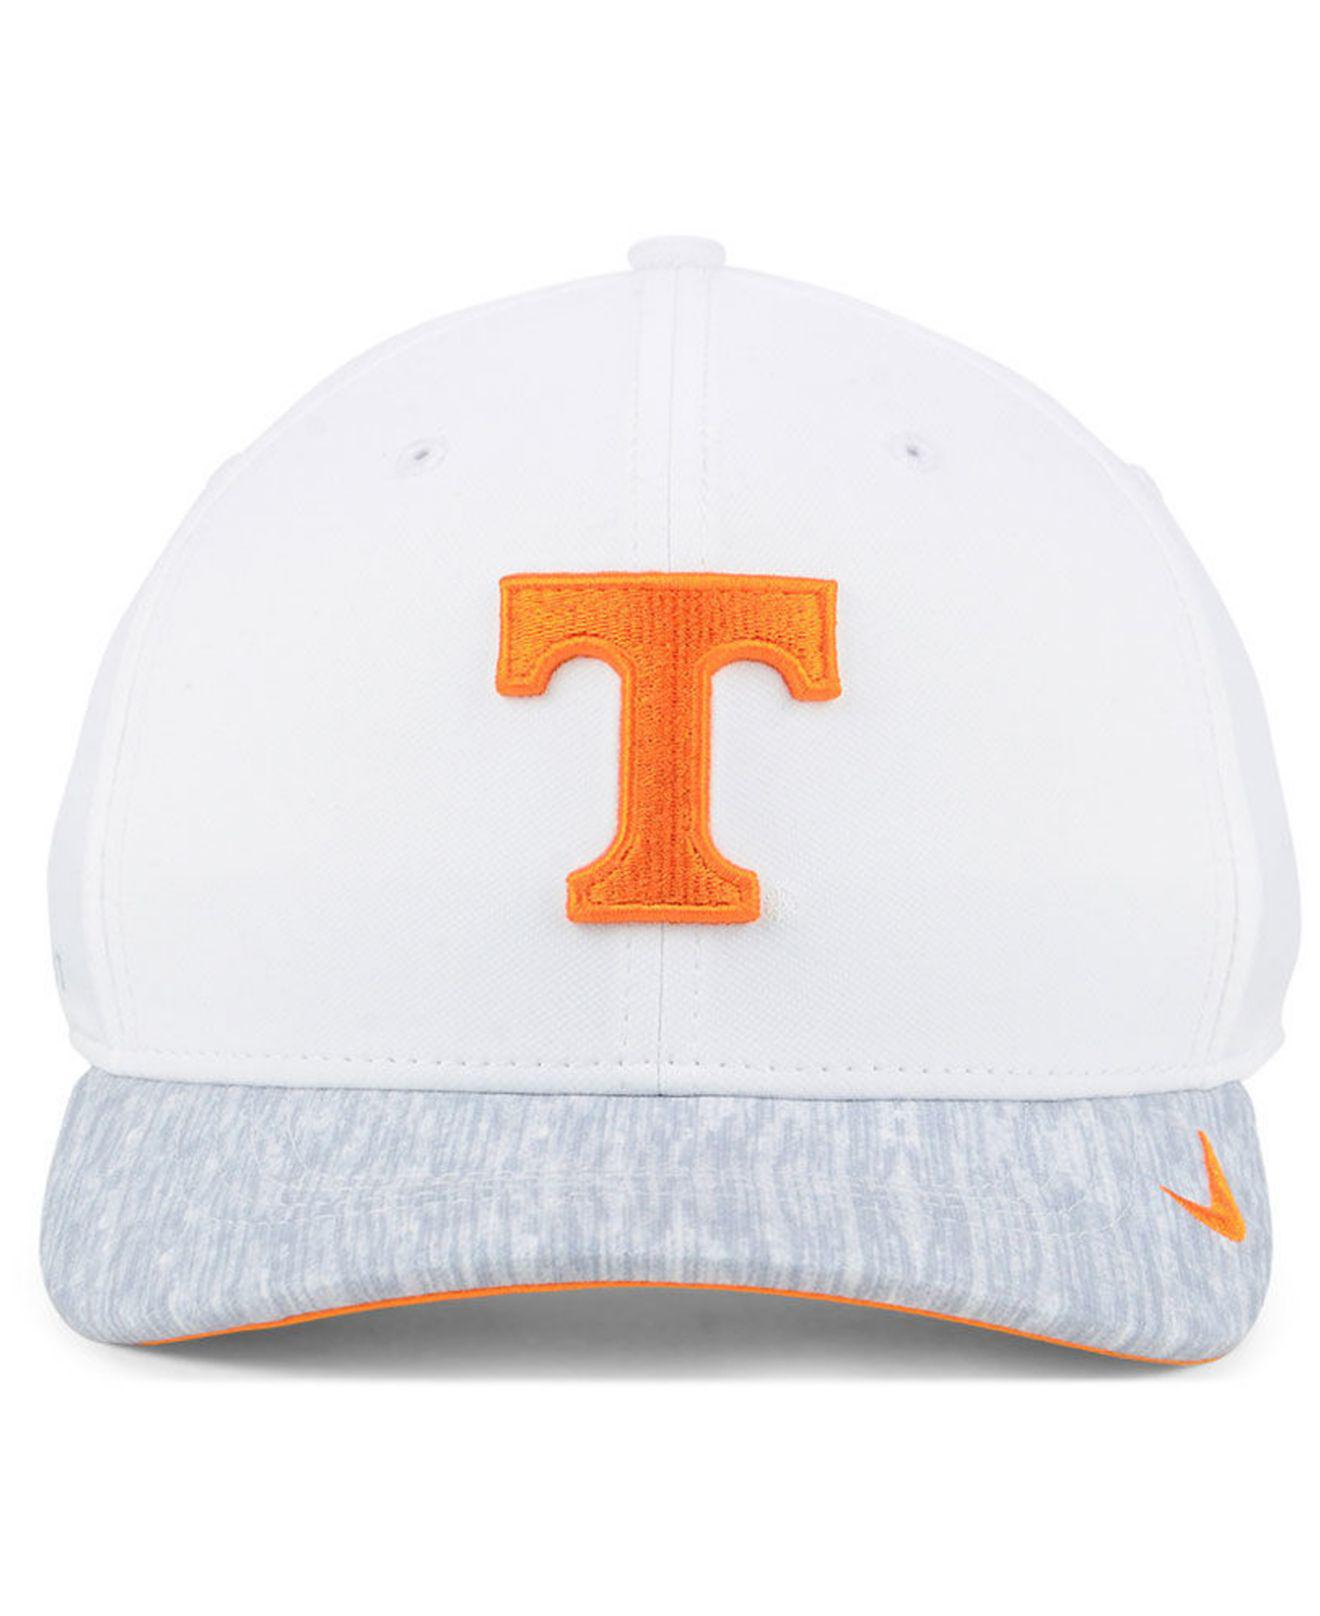 fde58a83a5749 low price lyst nike tennessee volunteers arobill swoosh flex cap in white  for men 1d555 7456c